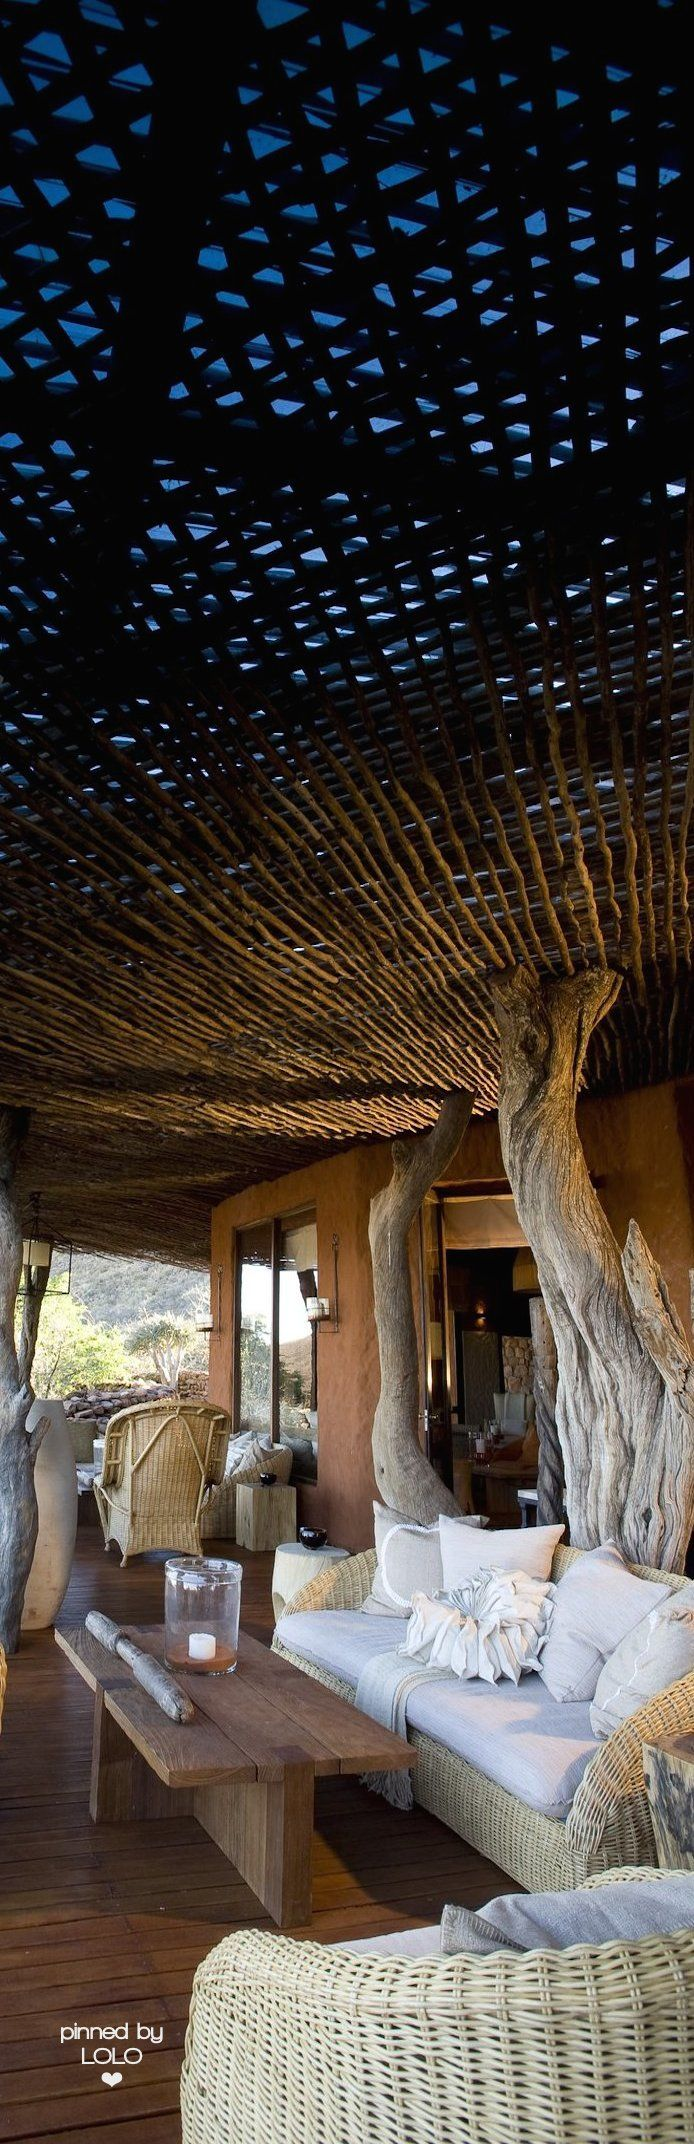 16 best HUT images on Pinterest | Home, Architecture and Gardens